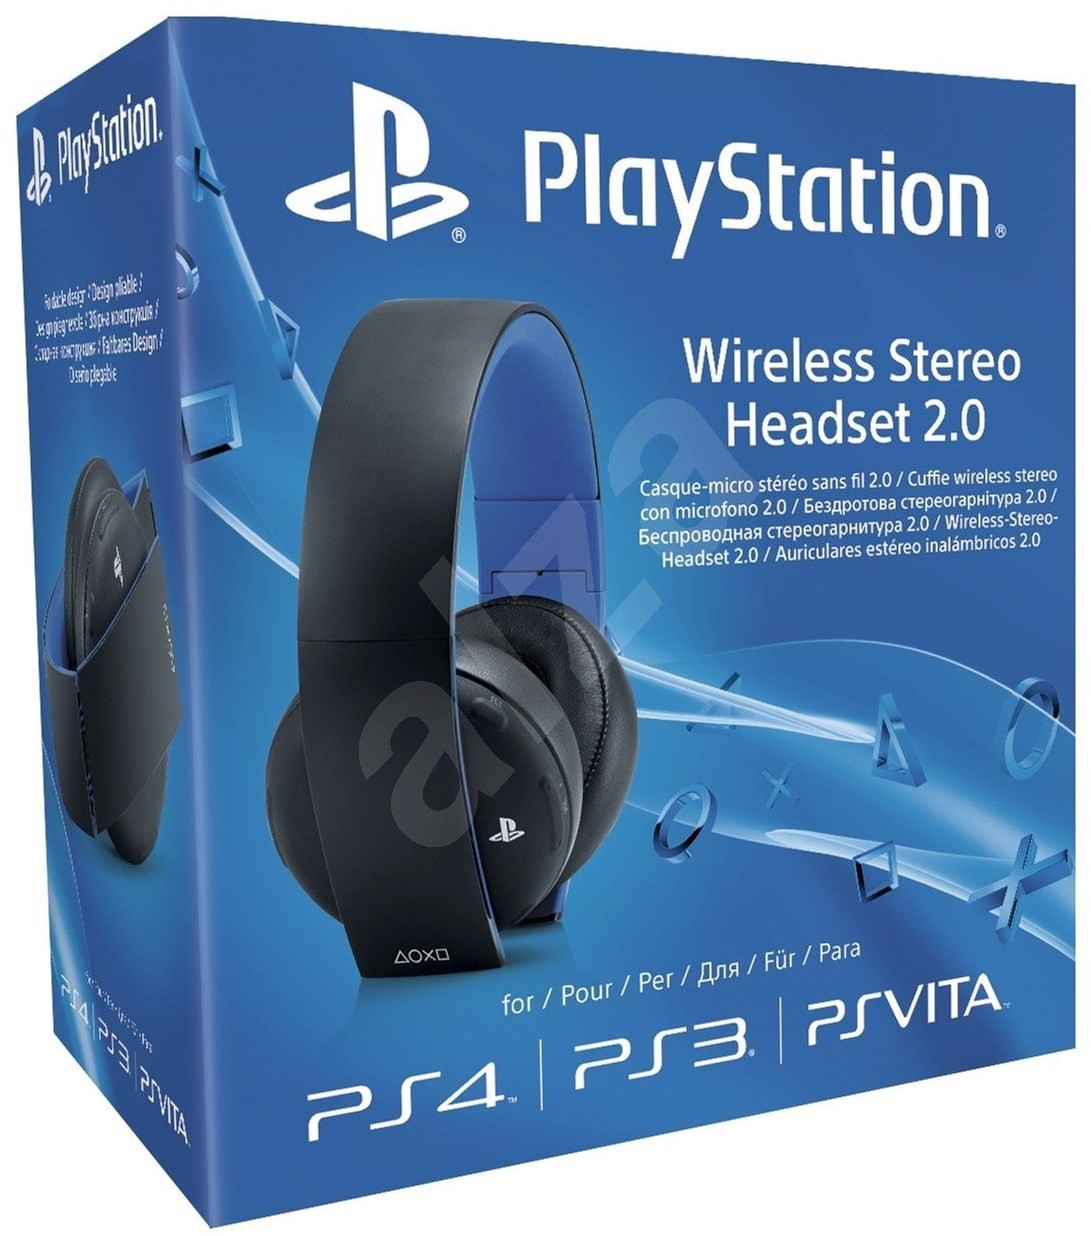 sony ps4 wireless stereo headset 2 0 boxed drahtlose. Black Bedroom Furniture Sets. Home Design Ideas